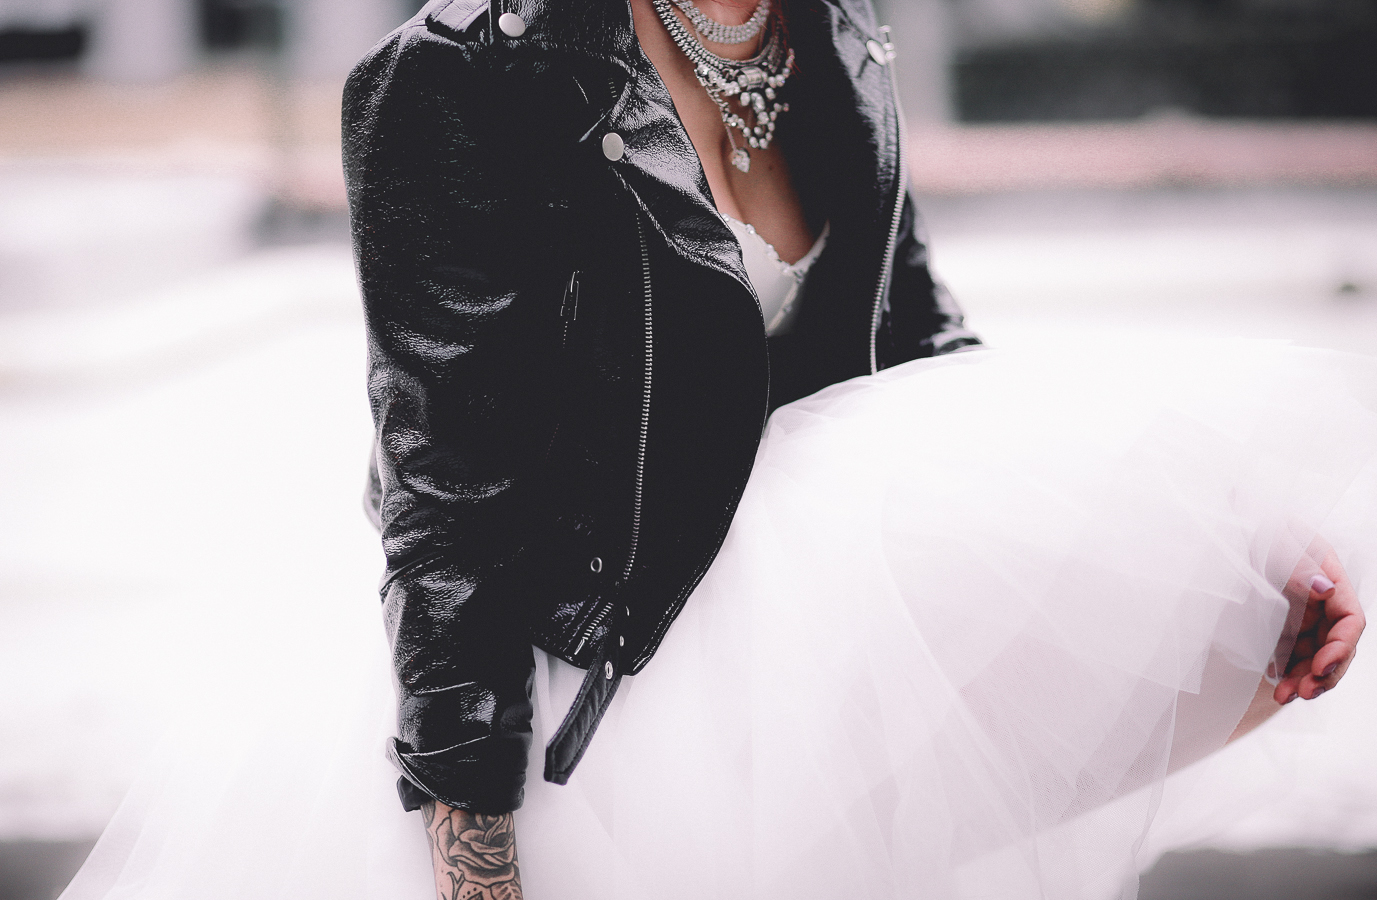 Le Happy wearing Nasty Gal Prom tulle dress and moto jacket